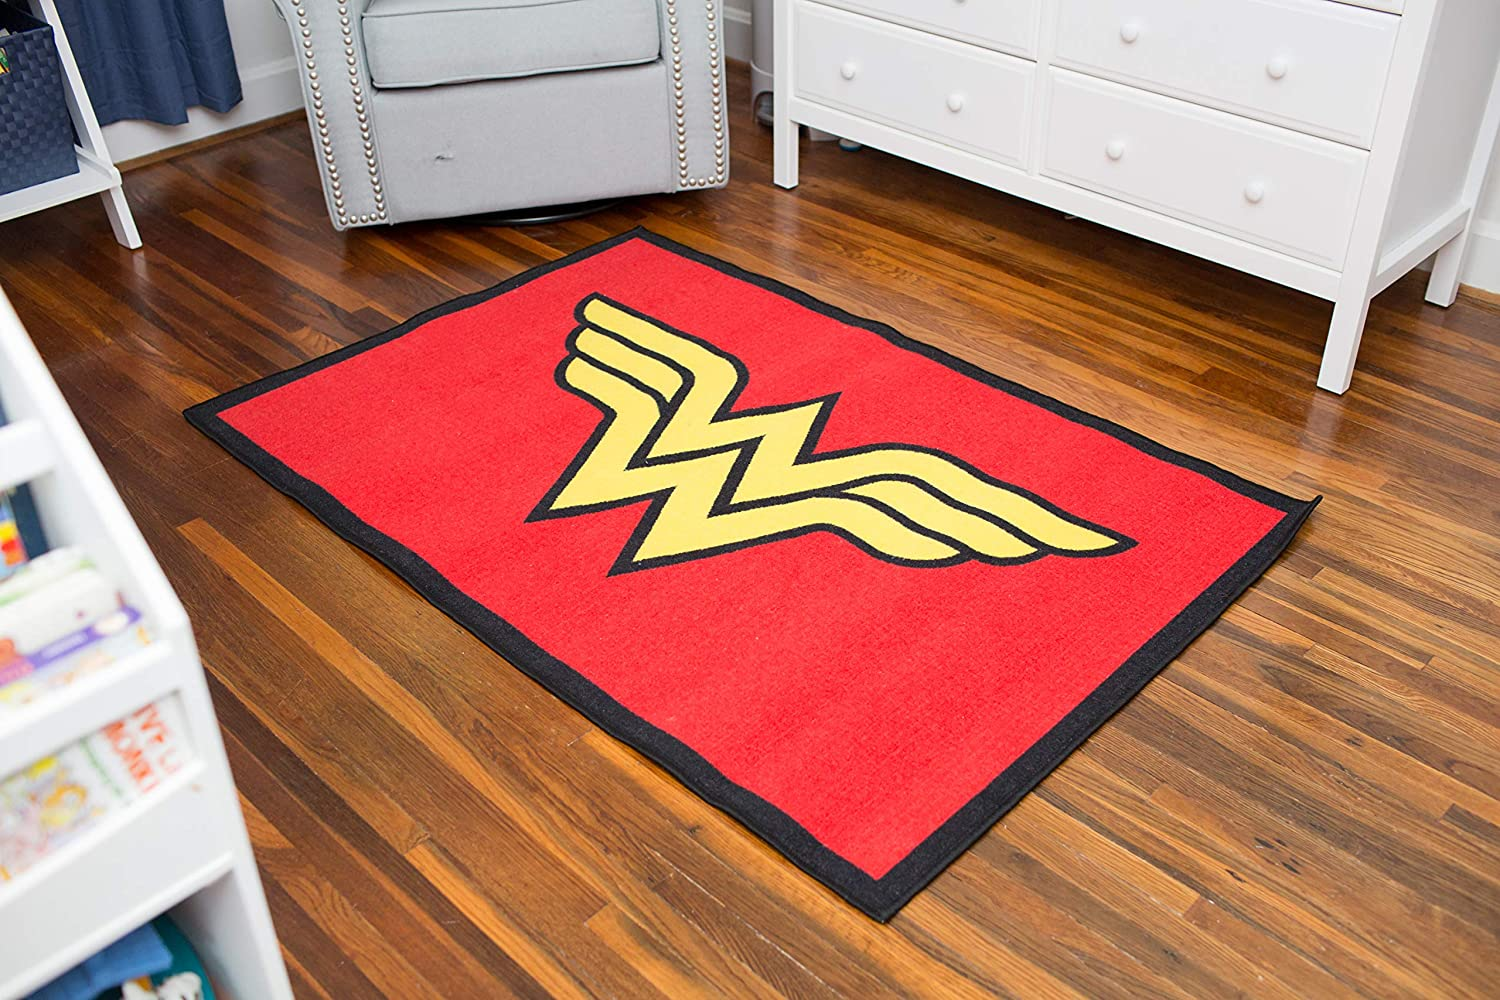 Wildkin 39x58 Inch Rug, Features Durable Design, Vibrant colors, and Skid-Proof Backing, Coordinates with Other Superhero Gear – Wonder Woman